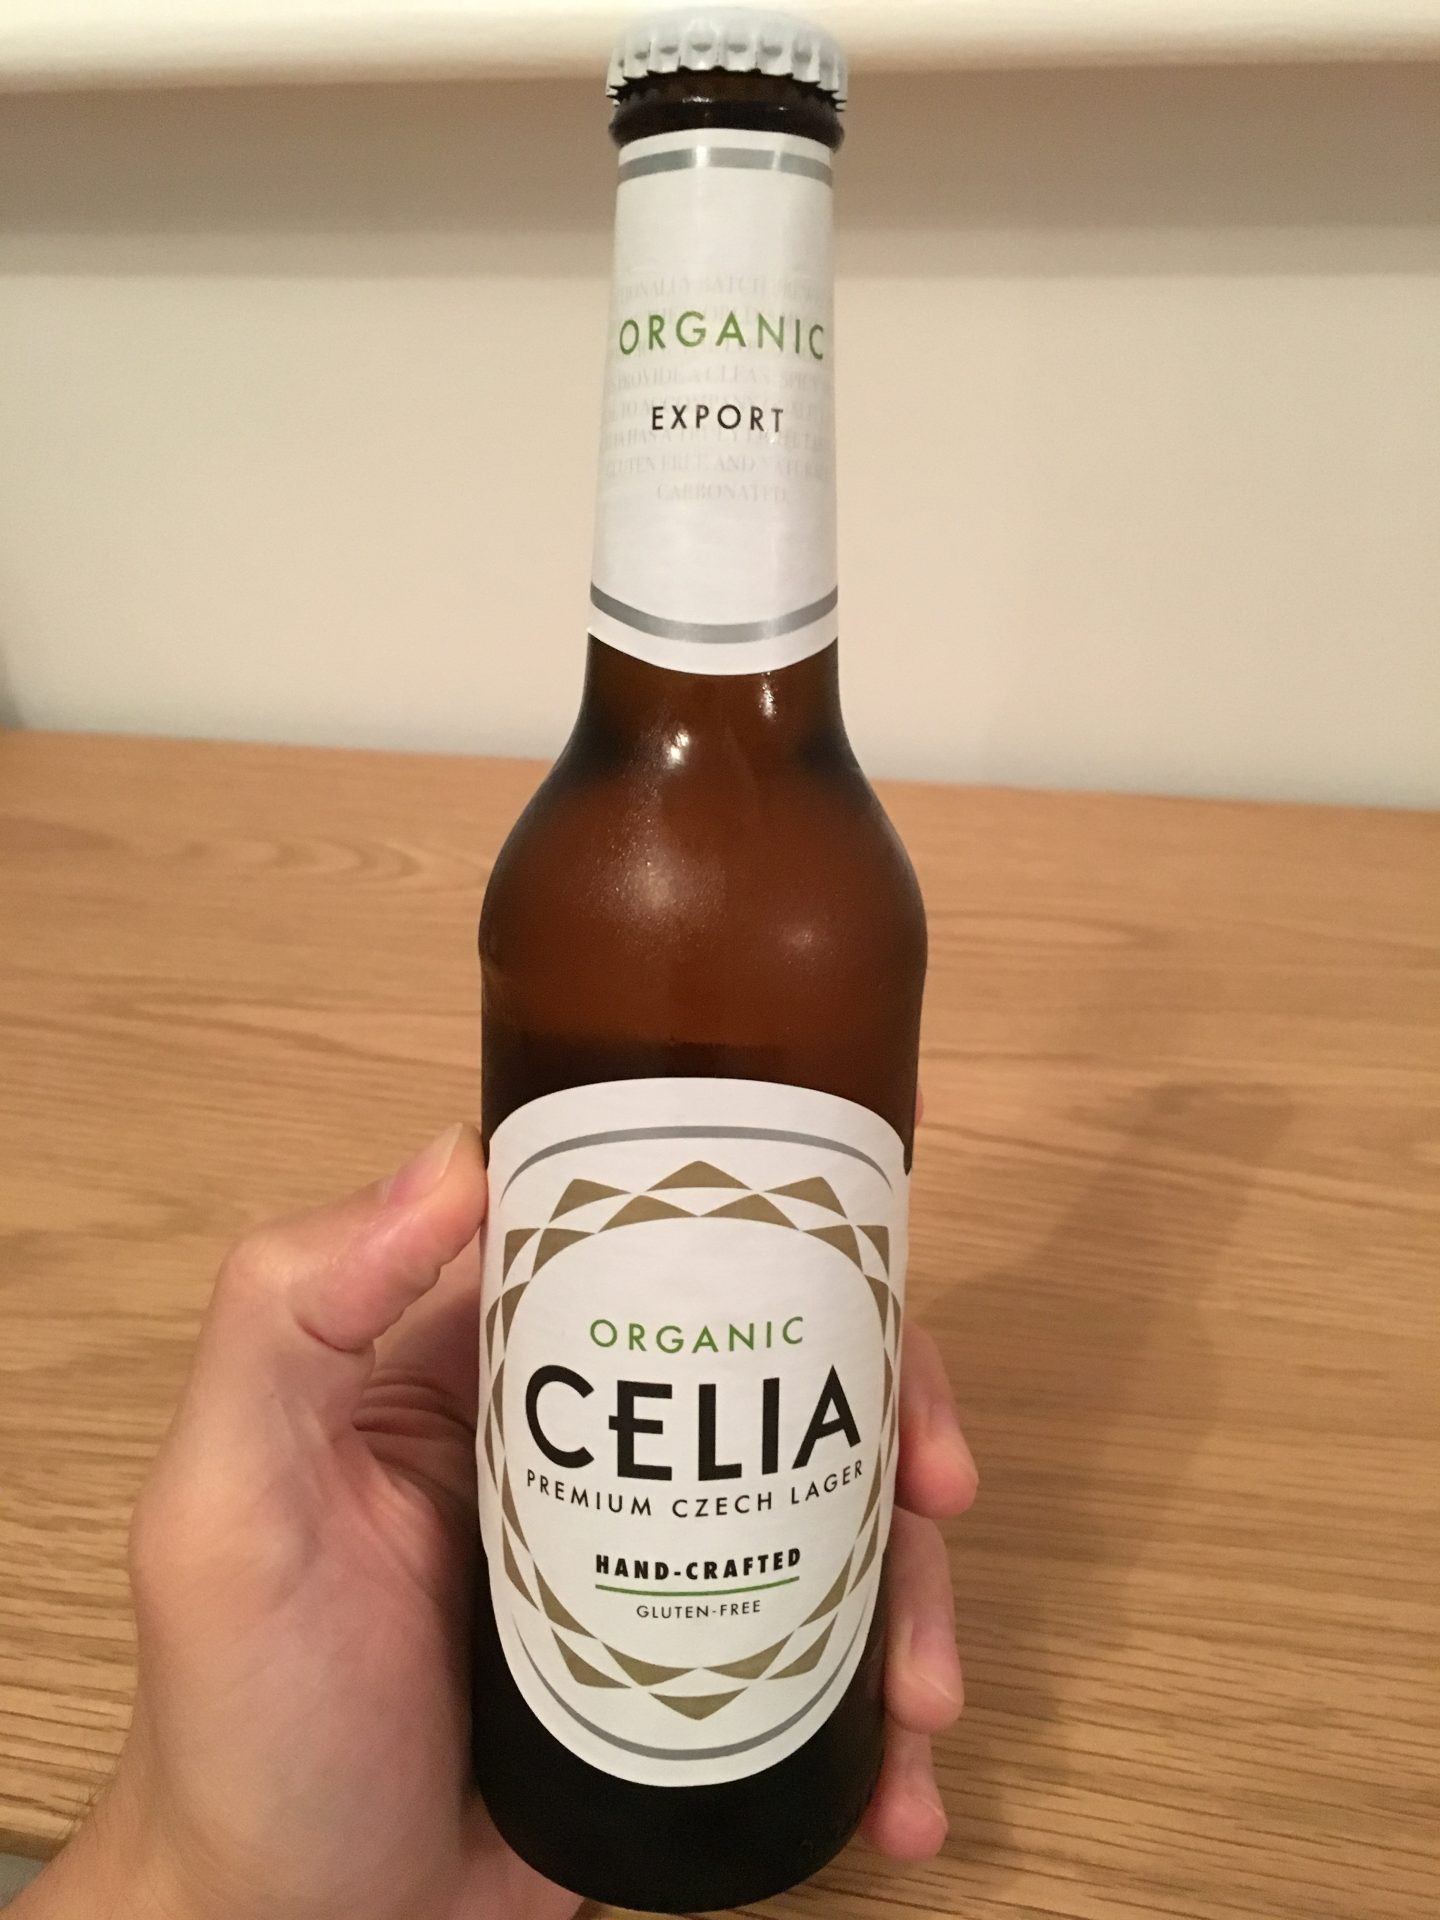 CELIA Organic Craft Czech Lager